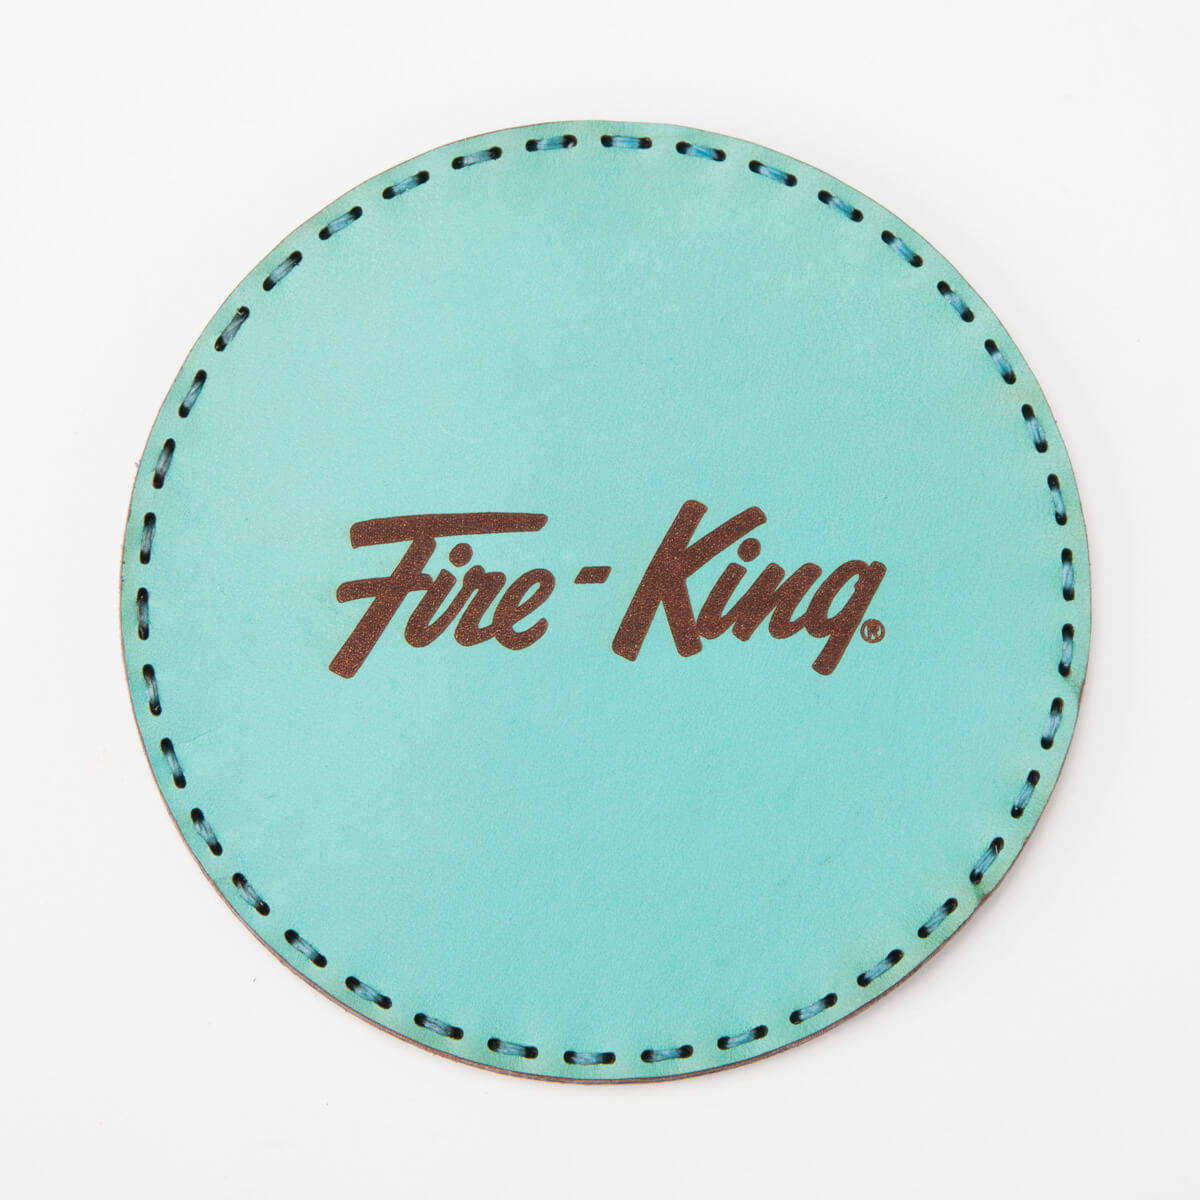 Fire-King レザーコースター by OJAGA DESIGN